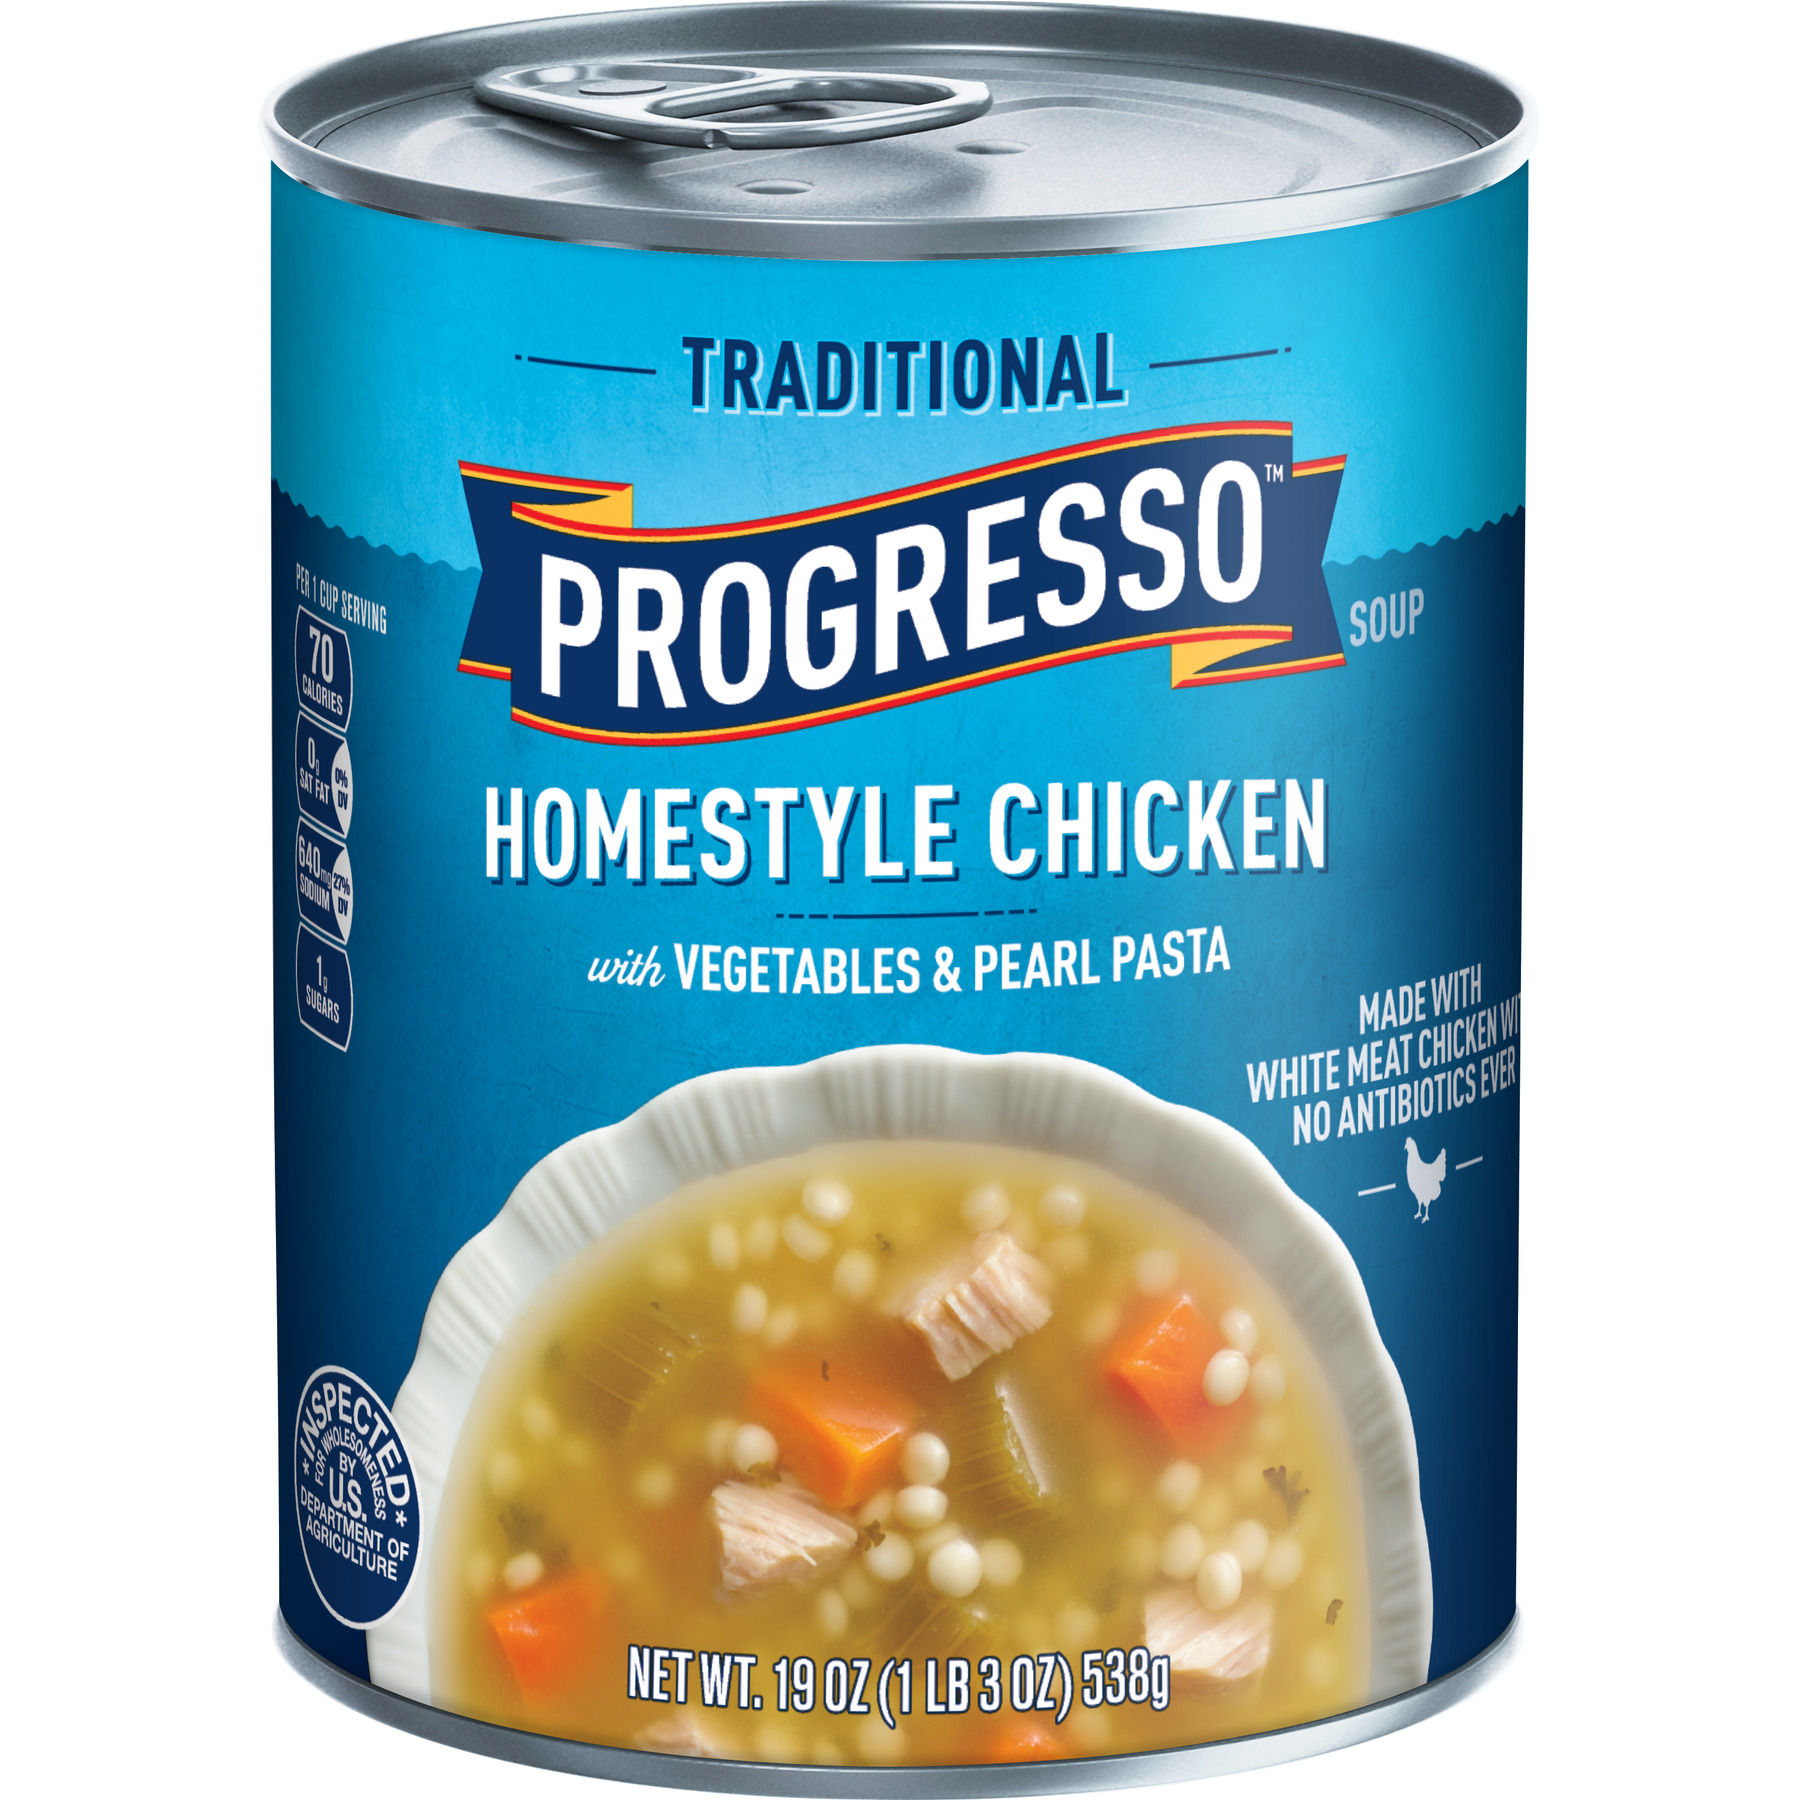 Progresso Soup, Traditional, Homestyle Chicken Soup, 19 oz Can ...